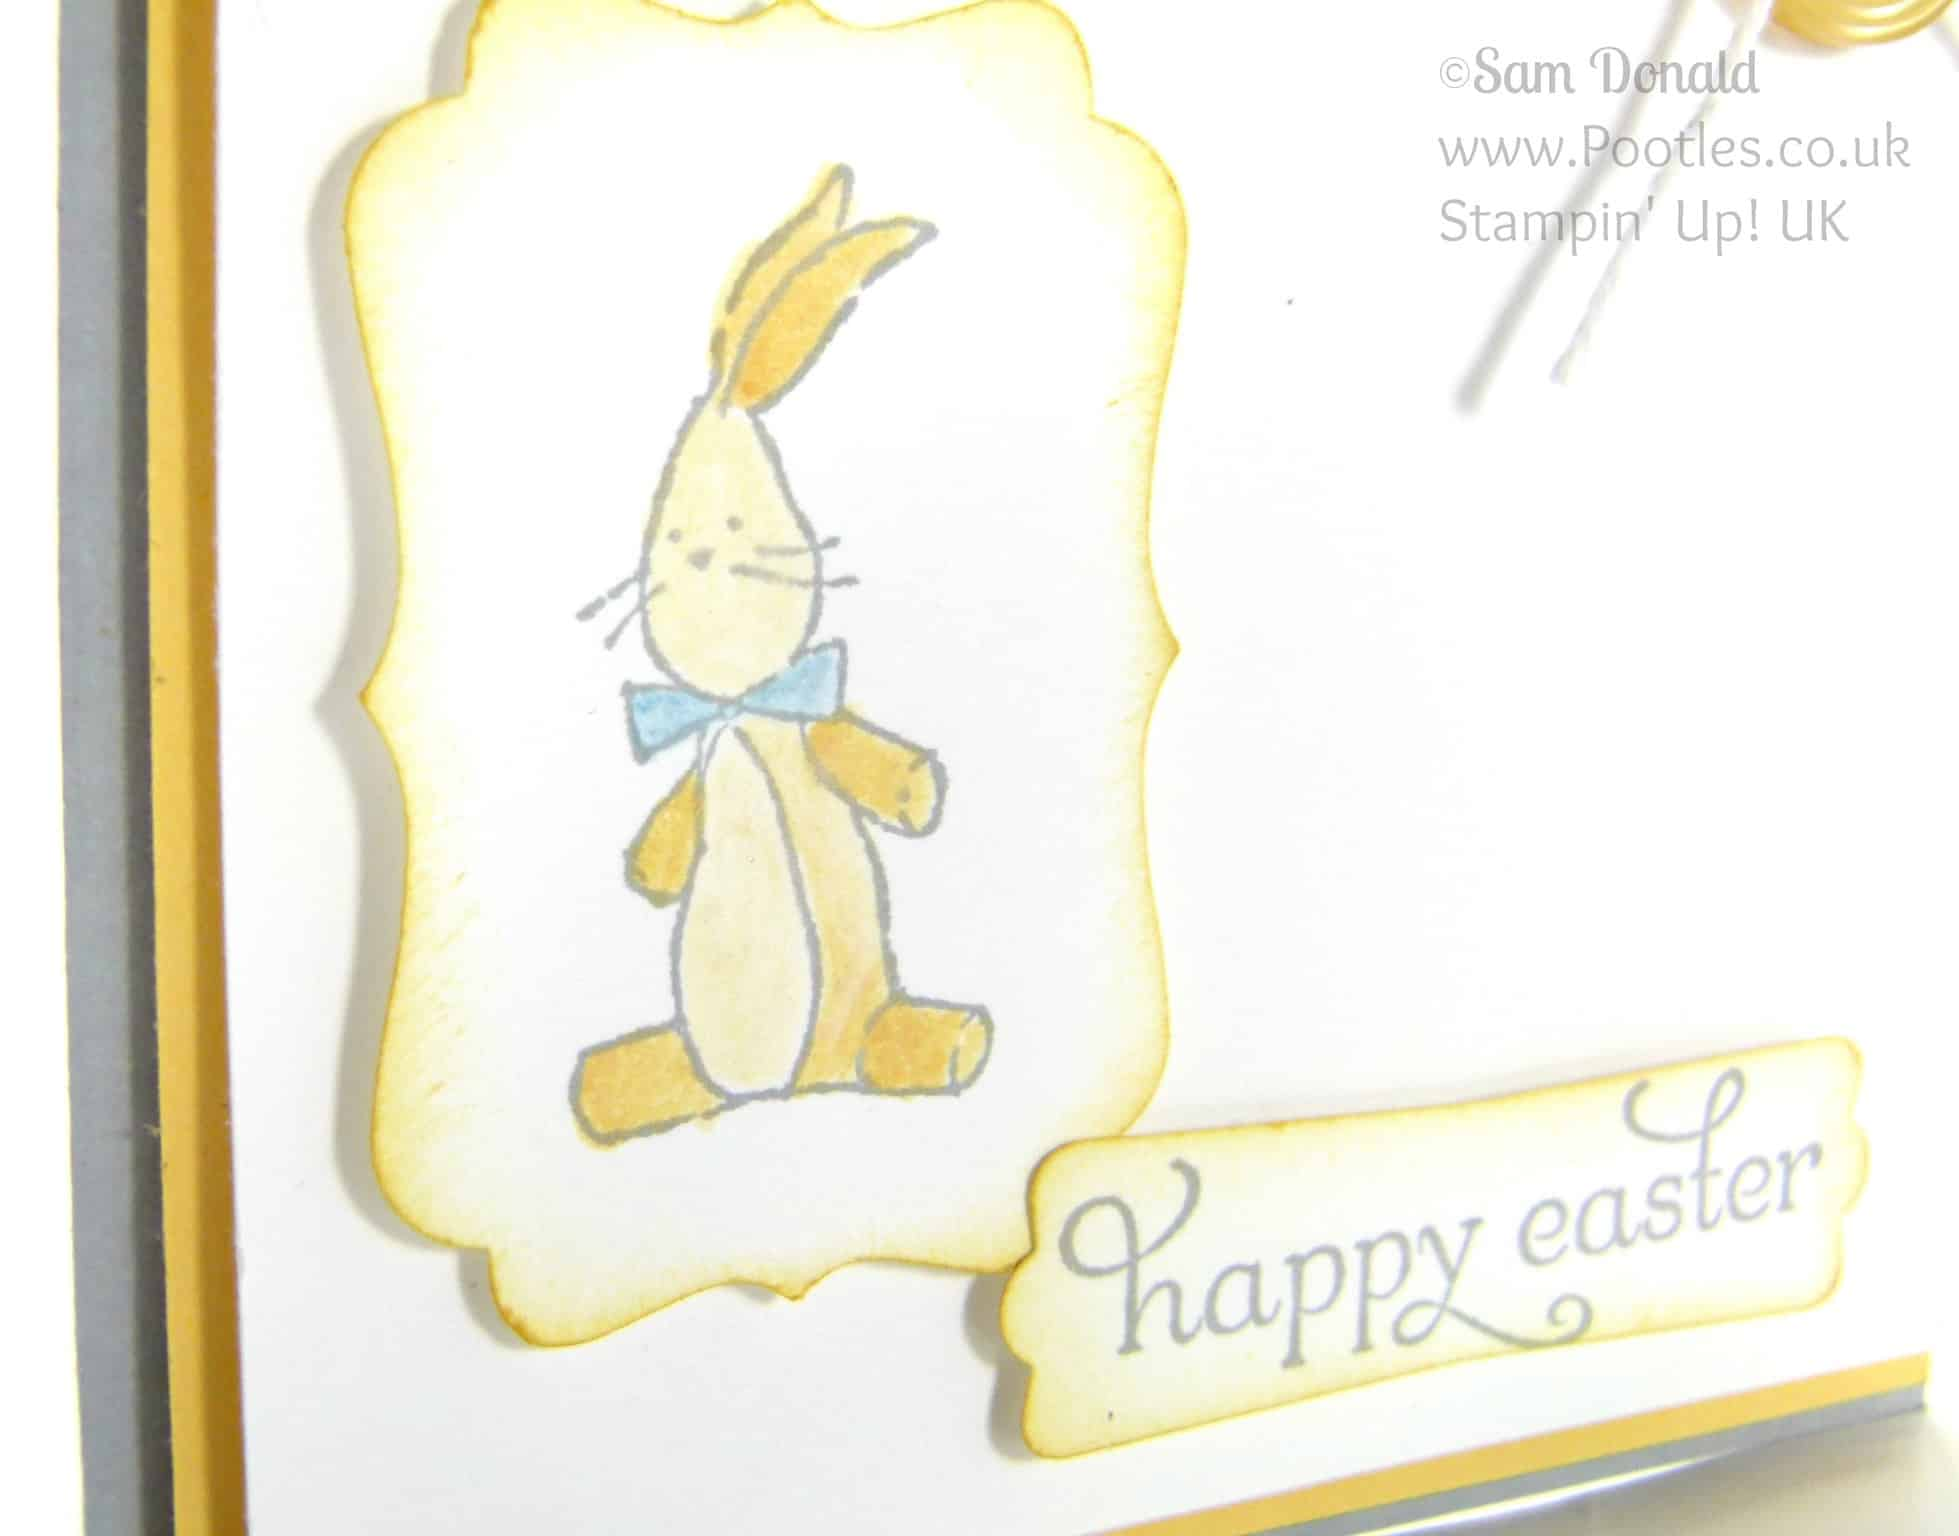 Non Seasonal Stamping for a very Happy Easter! + Bonus Gift